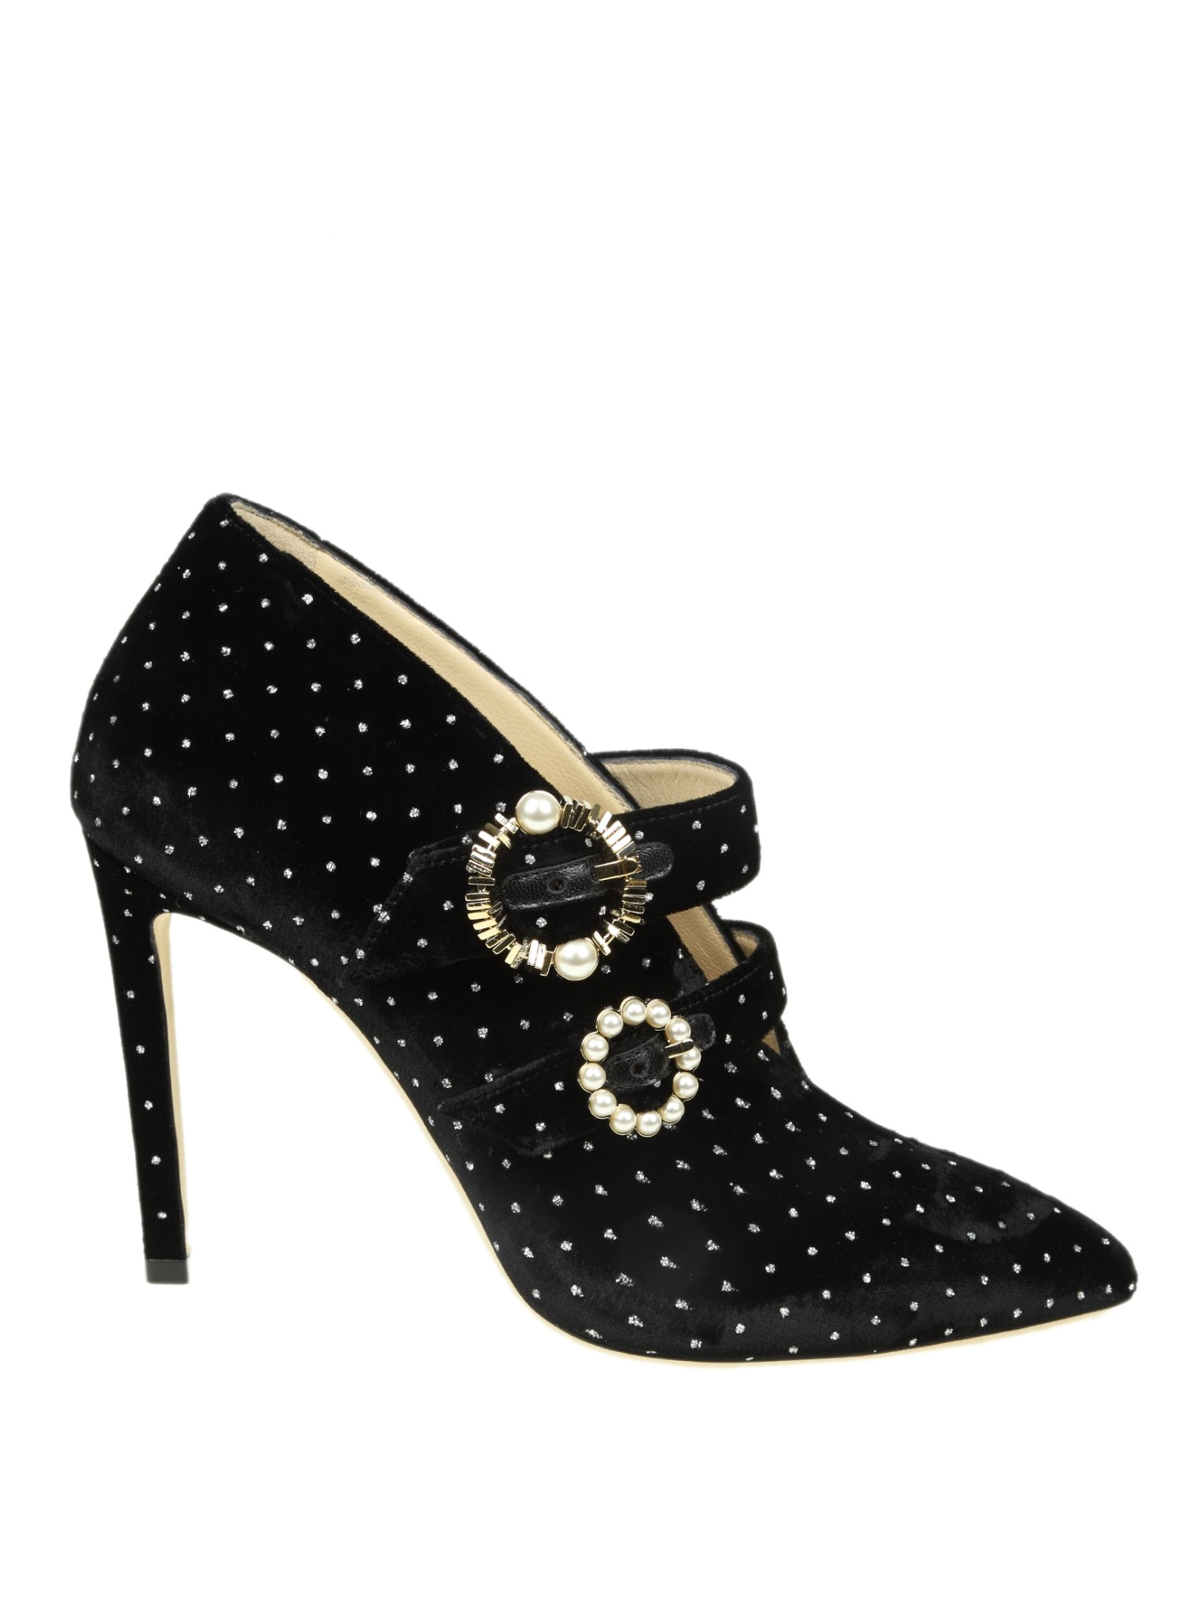 6540a2e6f07 JIMMY CHOO  ankle boots - Larissa 100 glitter spotted velvet booties